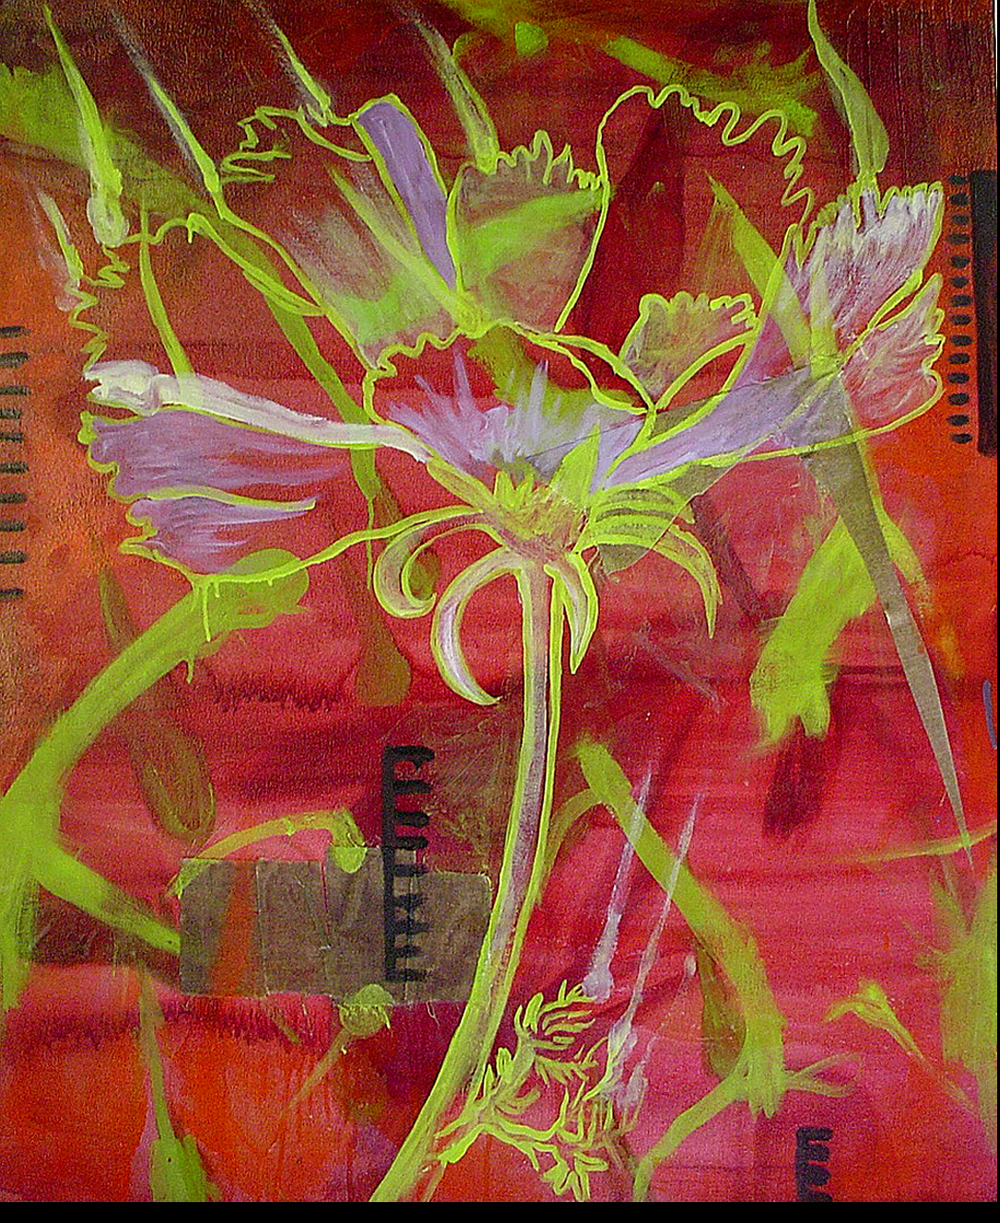 "Green Cosmos    Oil and Beeswax on Canvas 34"" x 28""  2003"